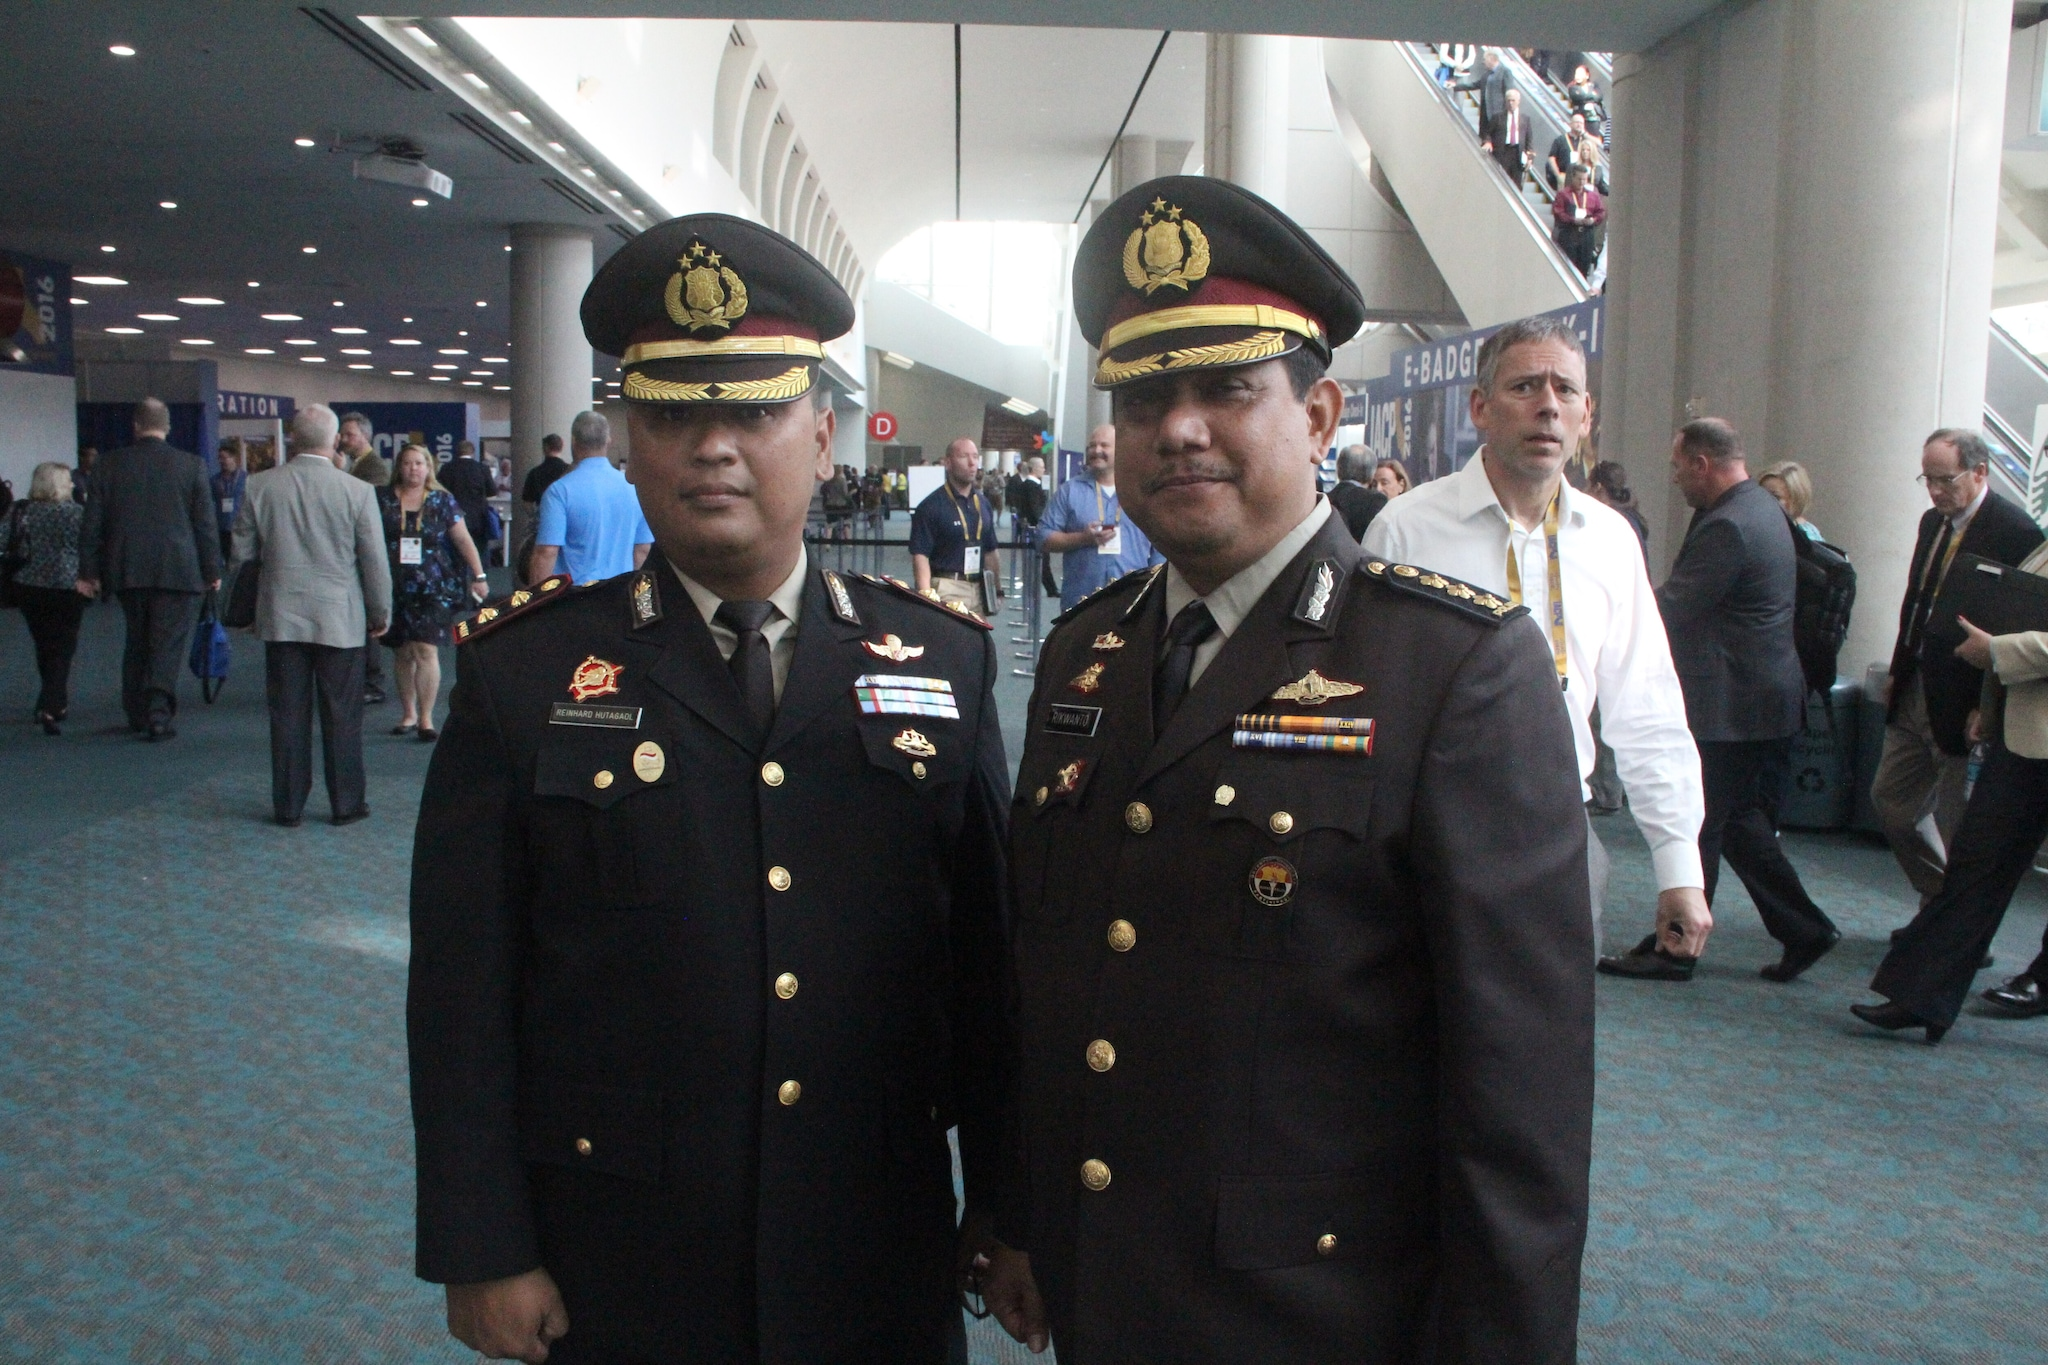 Two Indonesia police officers pose for a photo on Uniform Day during the National Association of Police Chiefs annual convention in San Diego Oct. 15-18, 2015. (Photo: Jared Morgan / Guns.com)